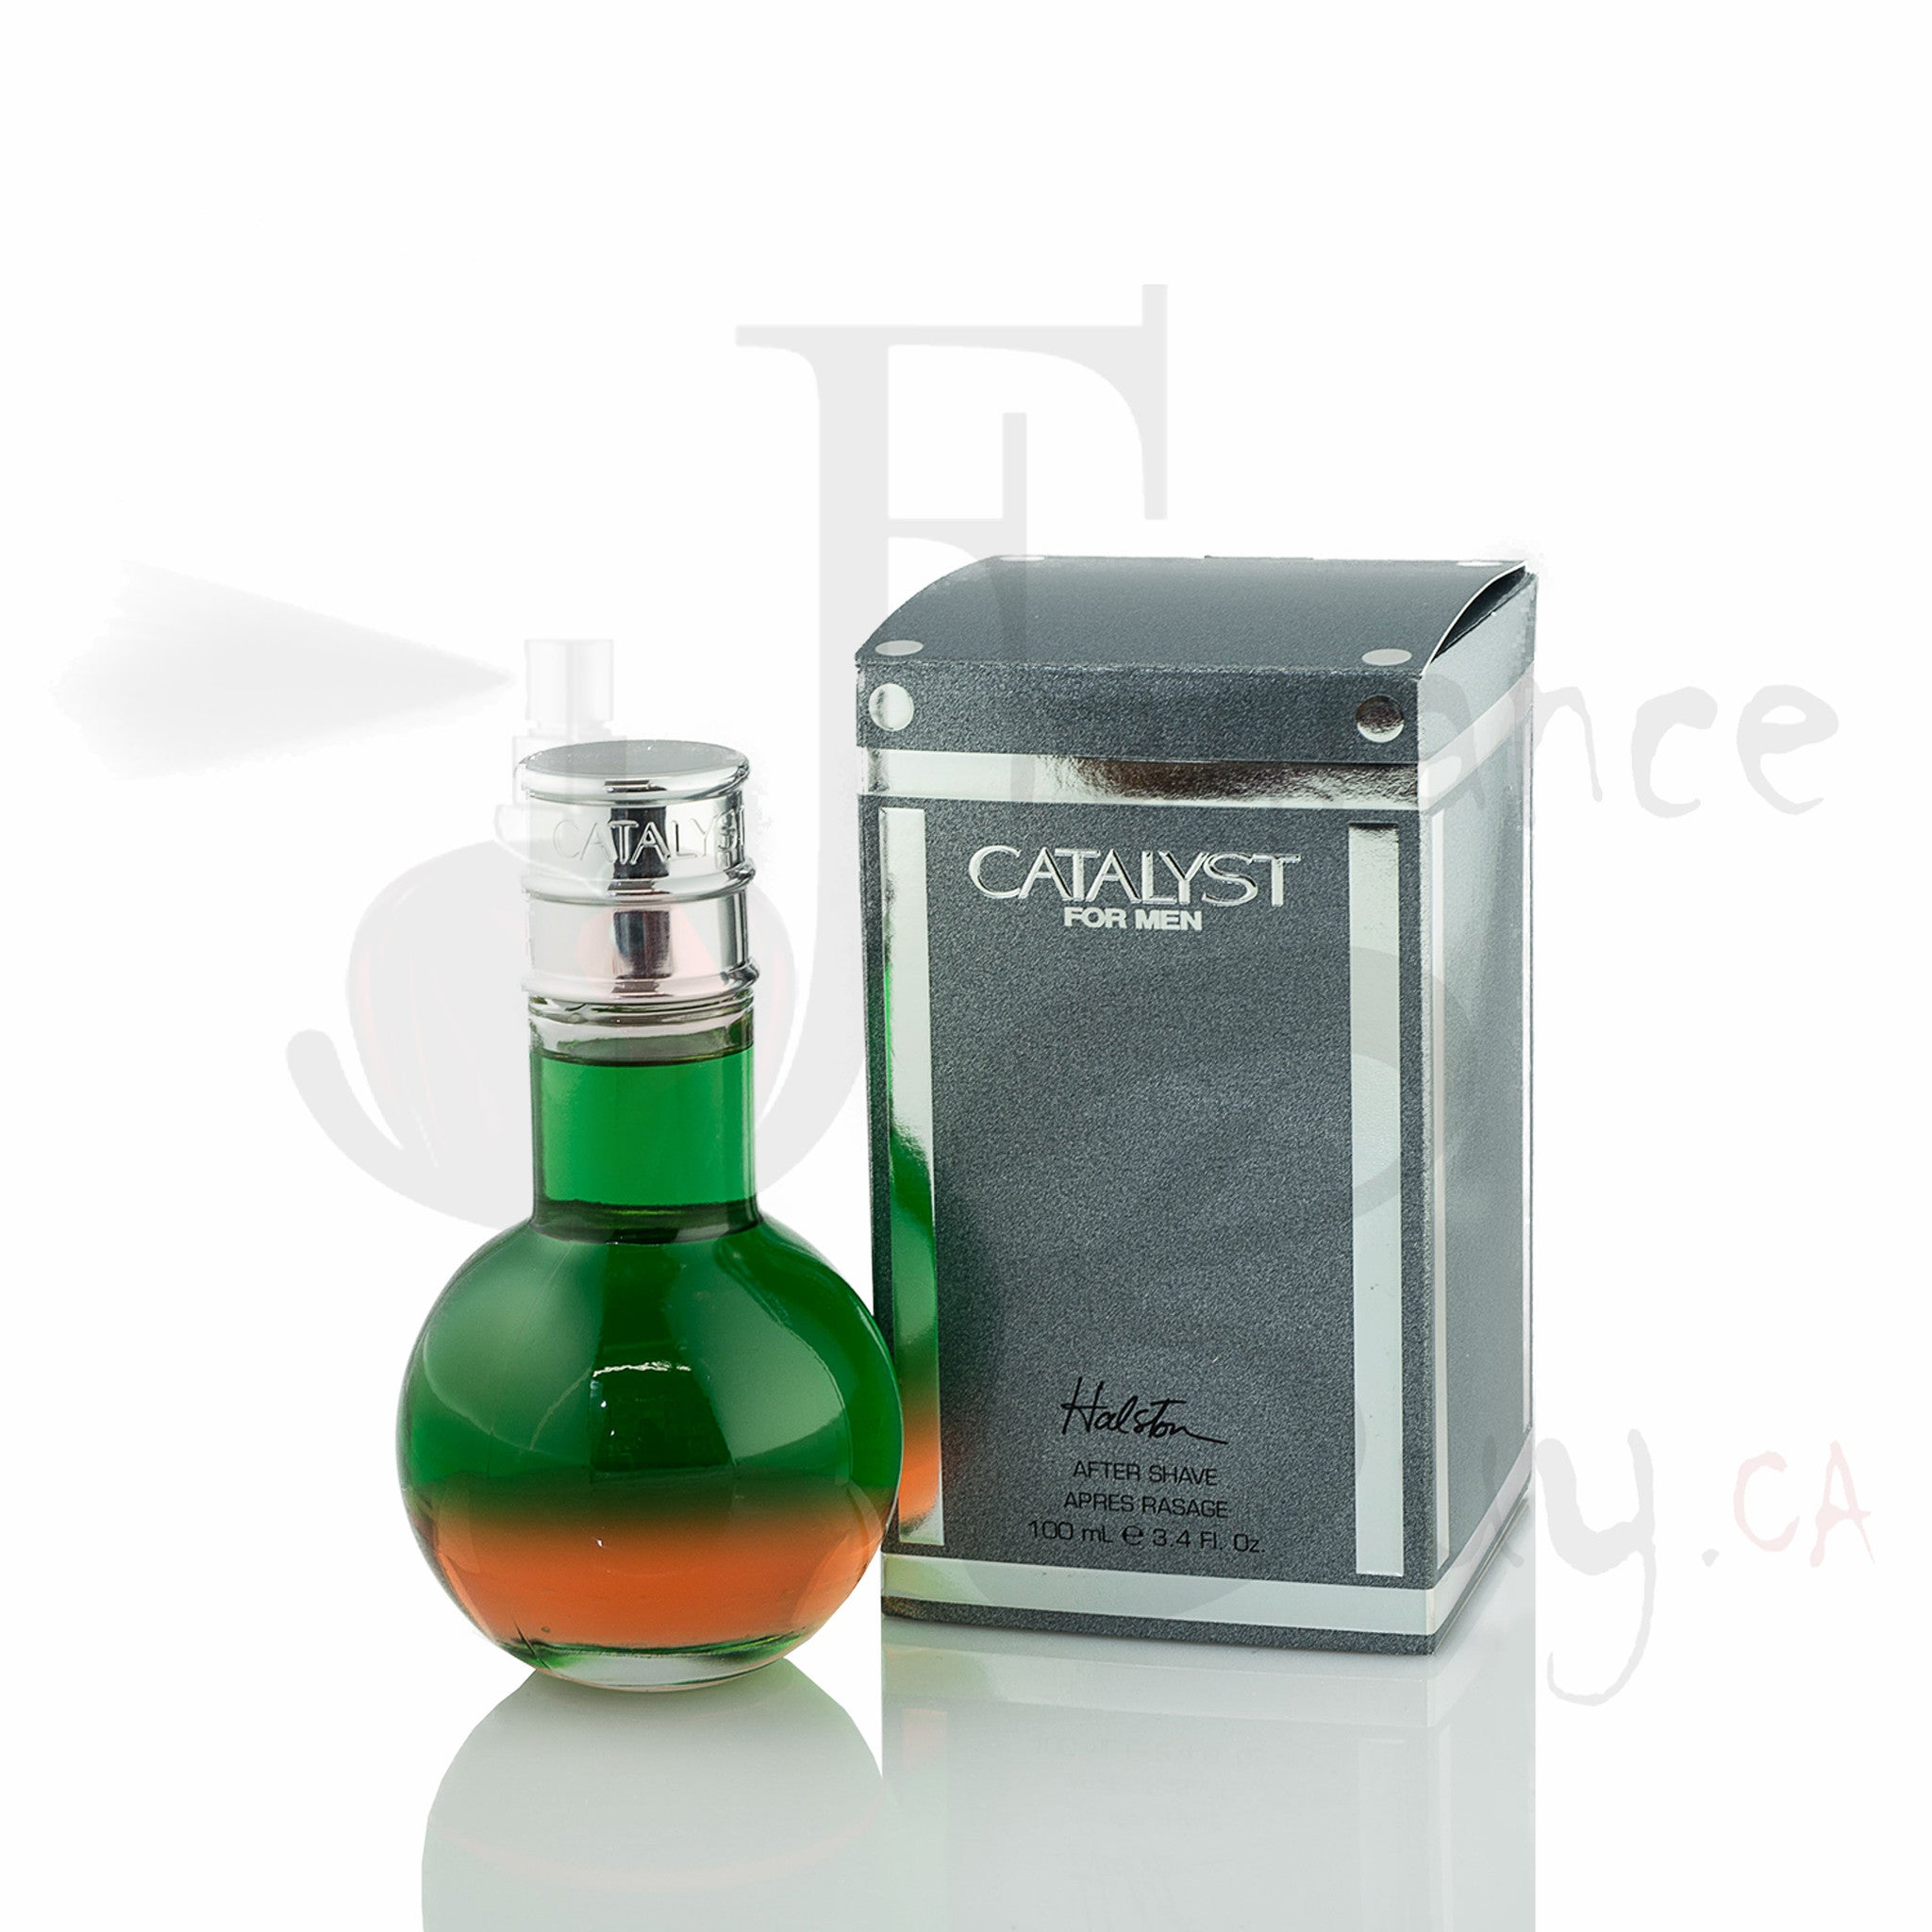 Halston Catalyst Man After Shave